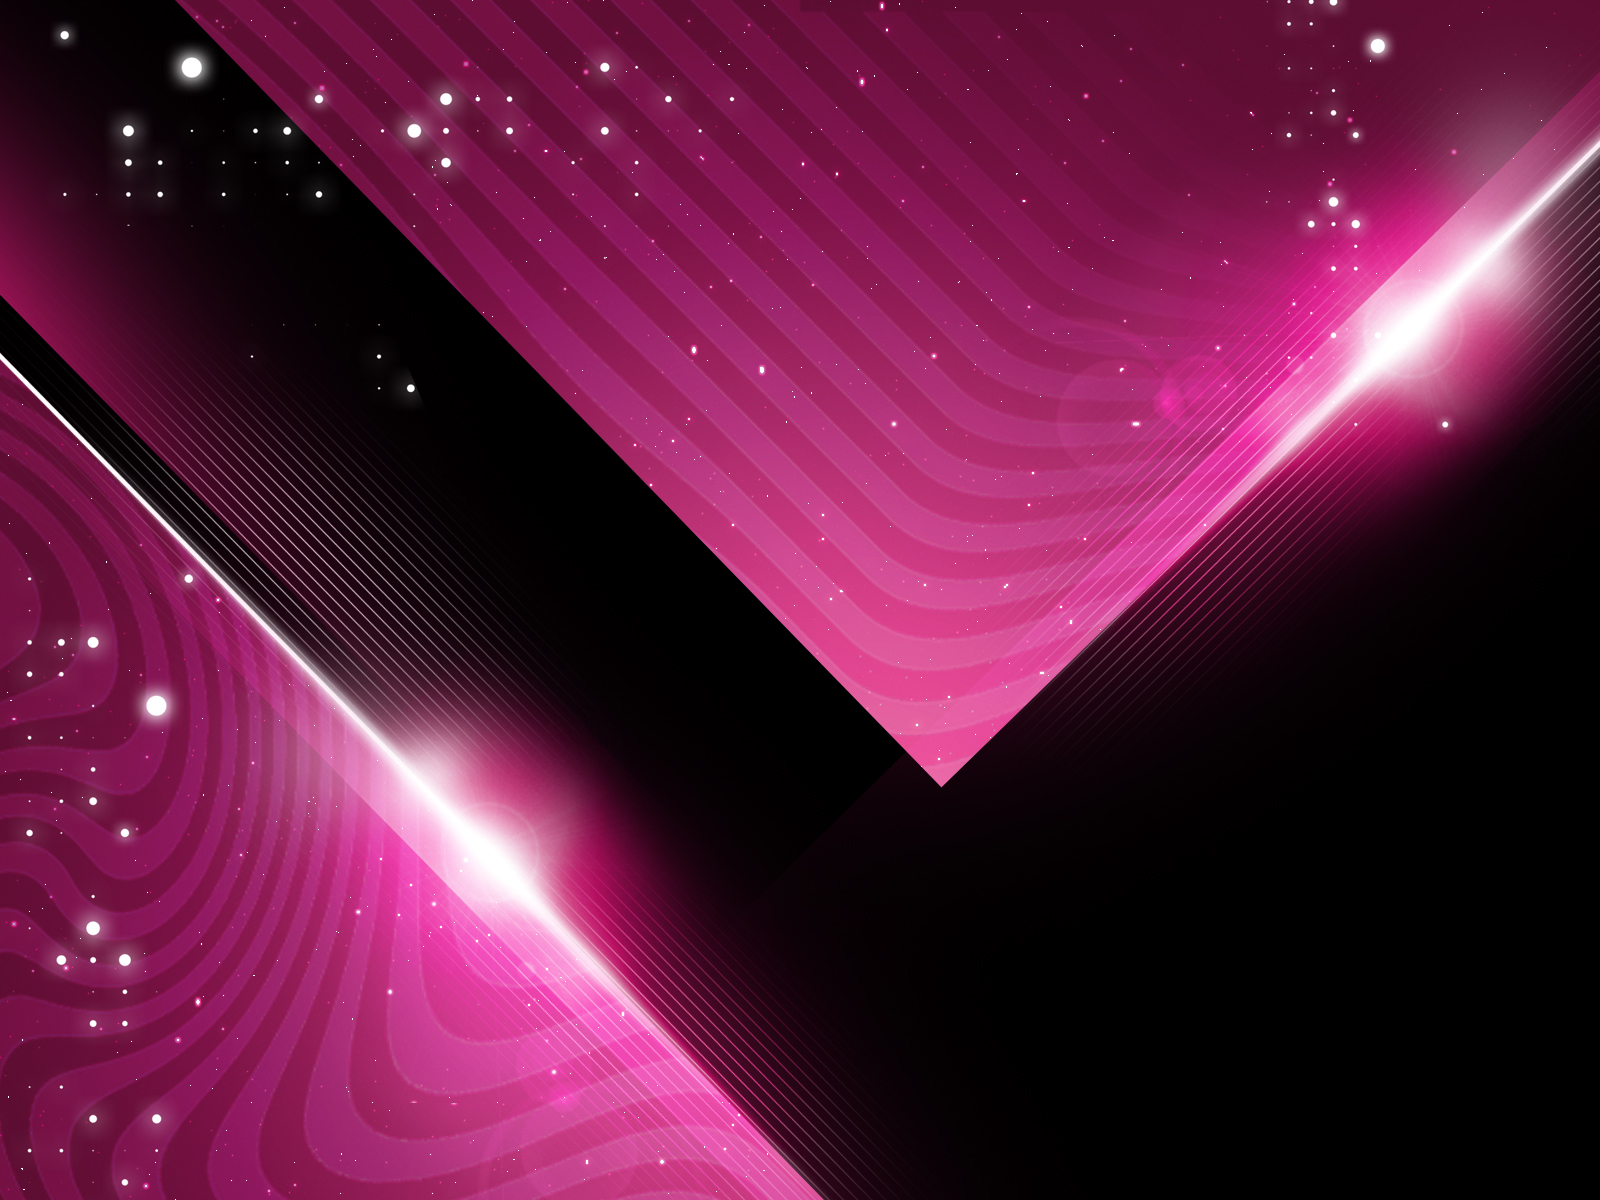 Deadmau5 Car Wallpaper Pink Party Free Ppt Backgrounds For Your Powerpoint Templates